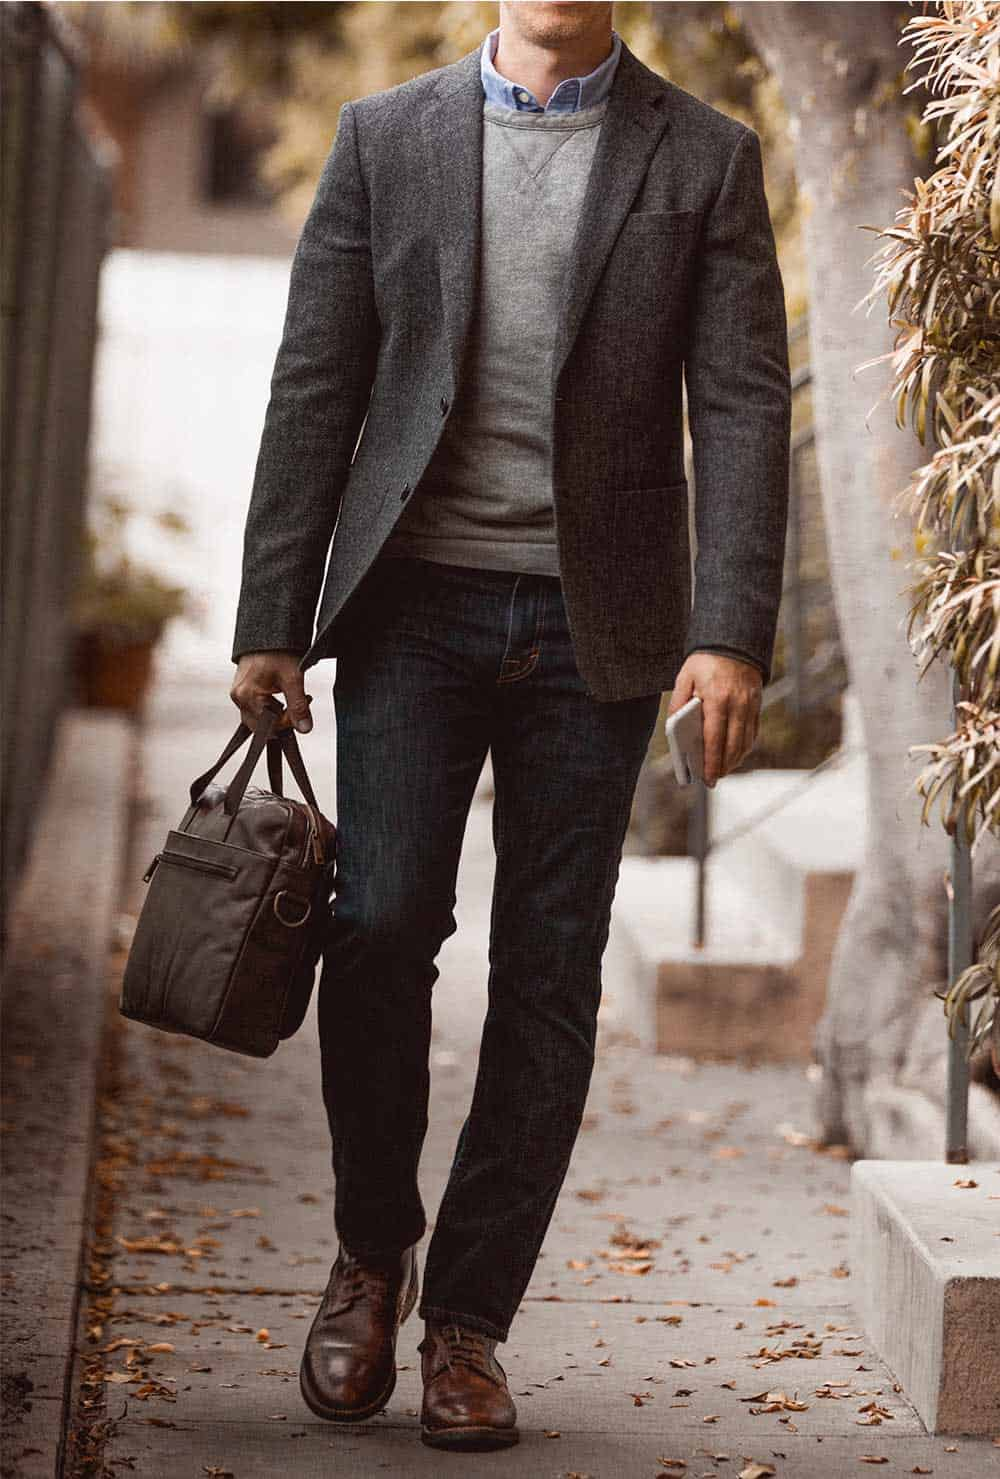 tweed blazer over sweatshirt with jeans and boots